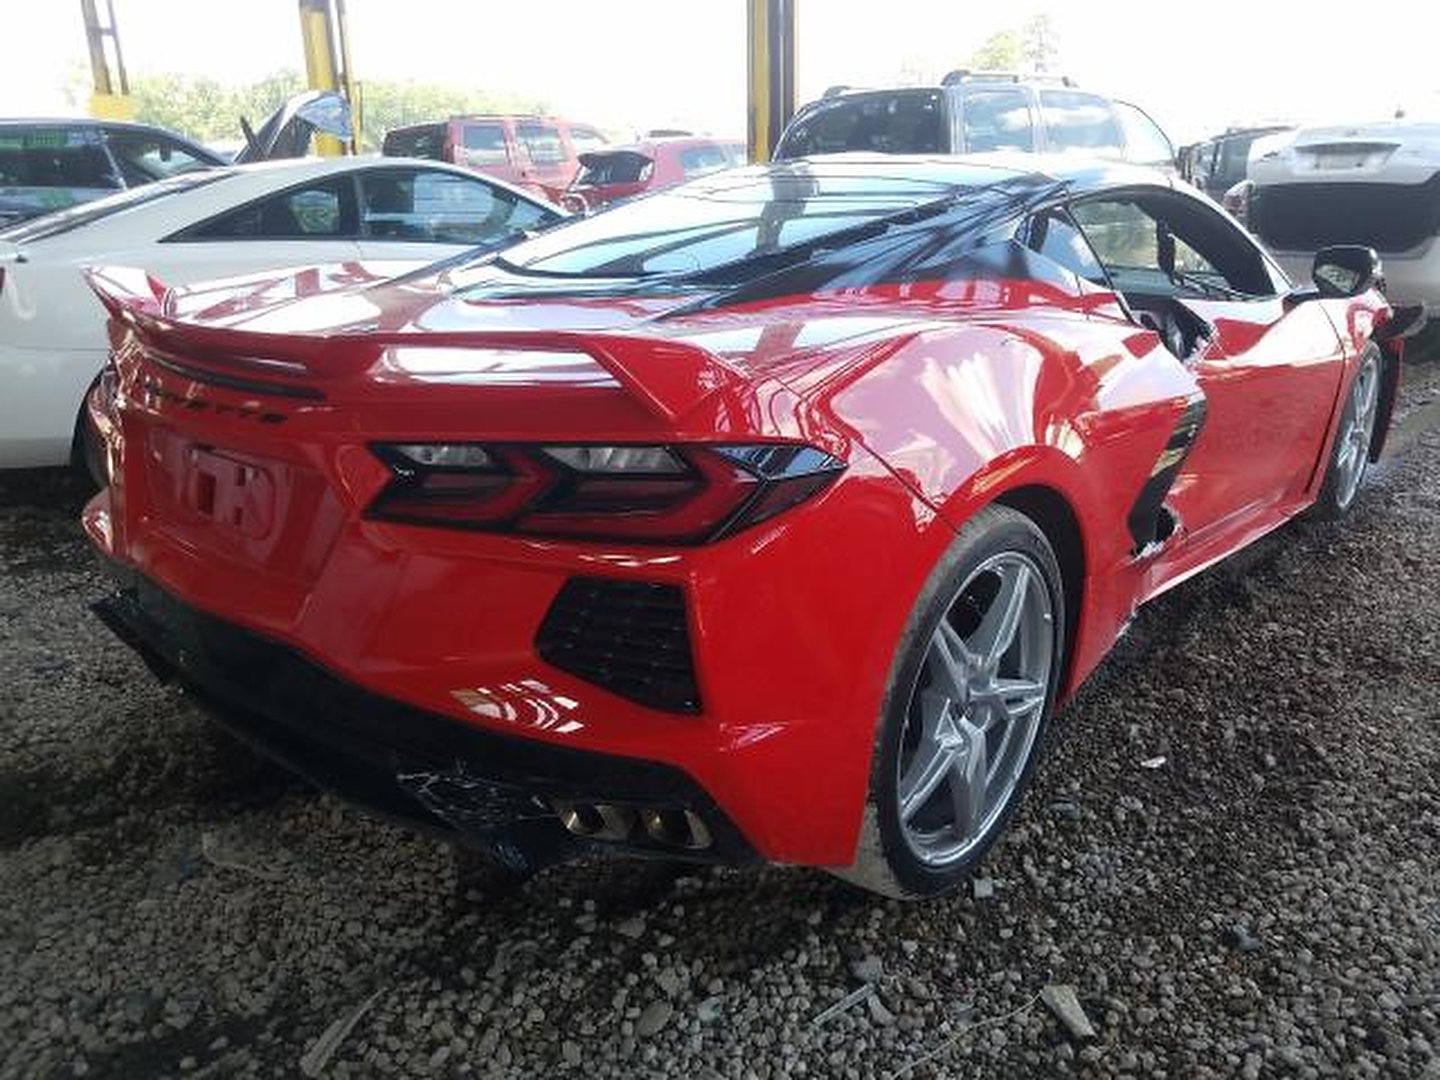 2020 Chevy Corvette dropped from lift